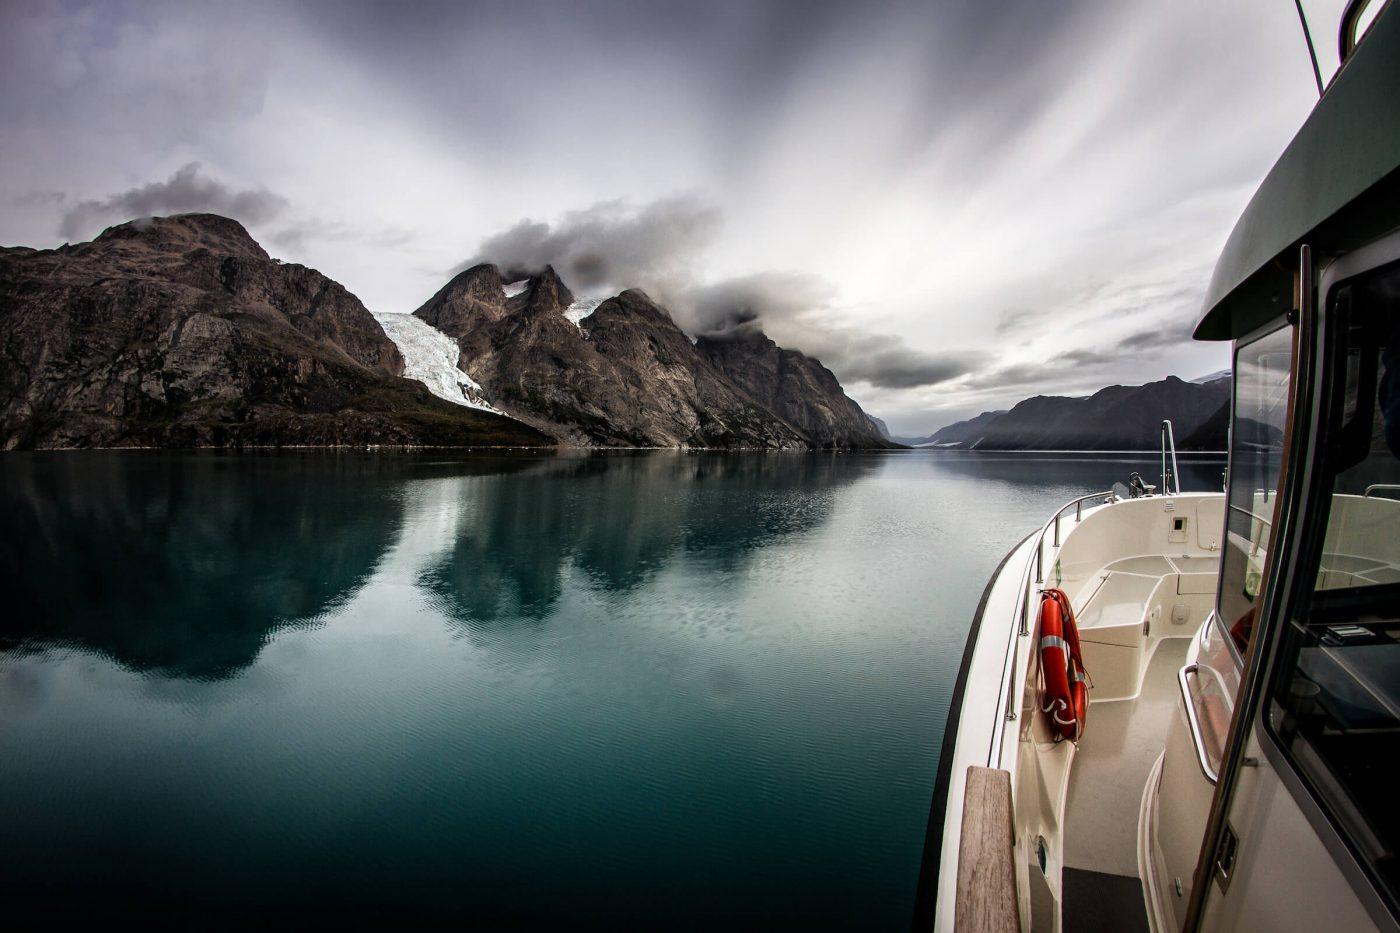 On a boat tour with Maniitsoq Tour Boat in the Eternity Fjord in Greenland